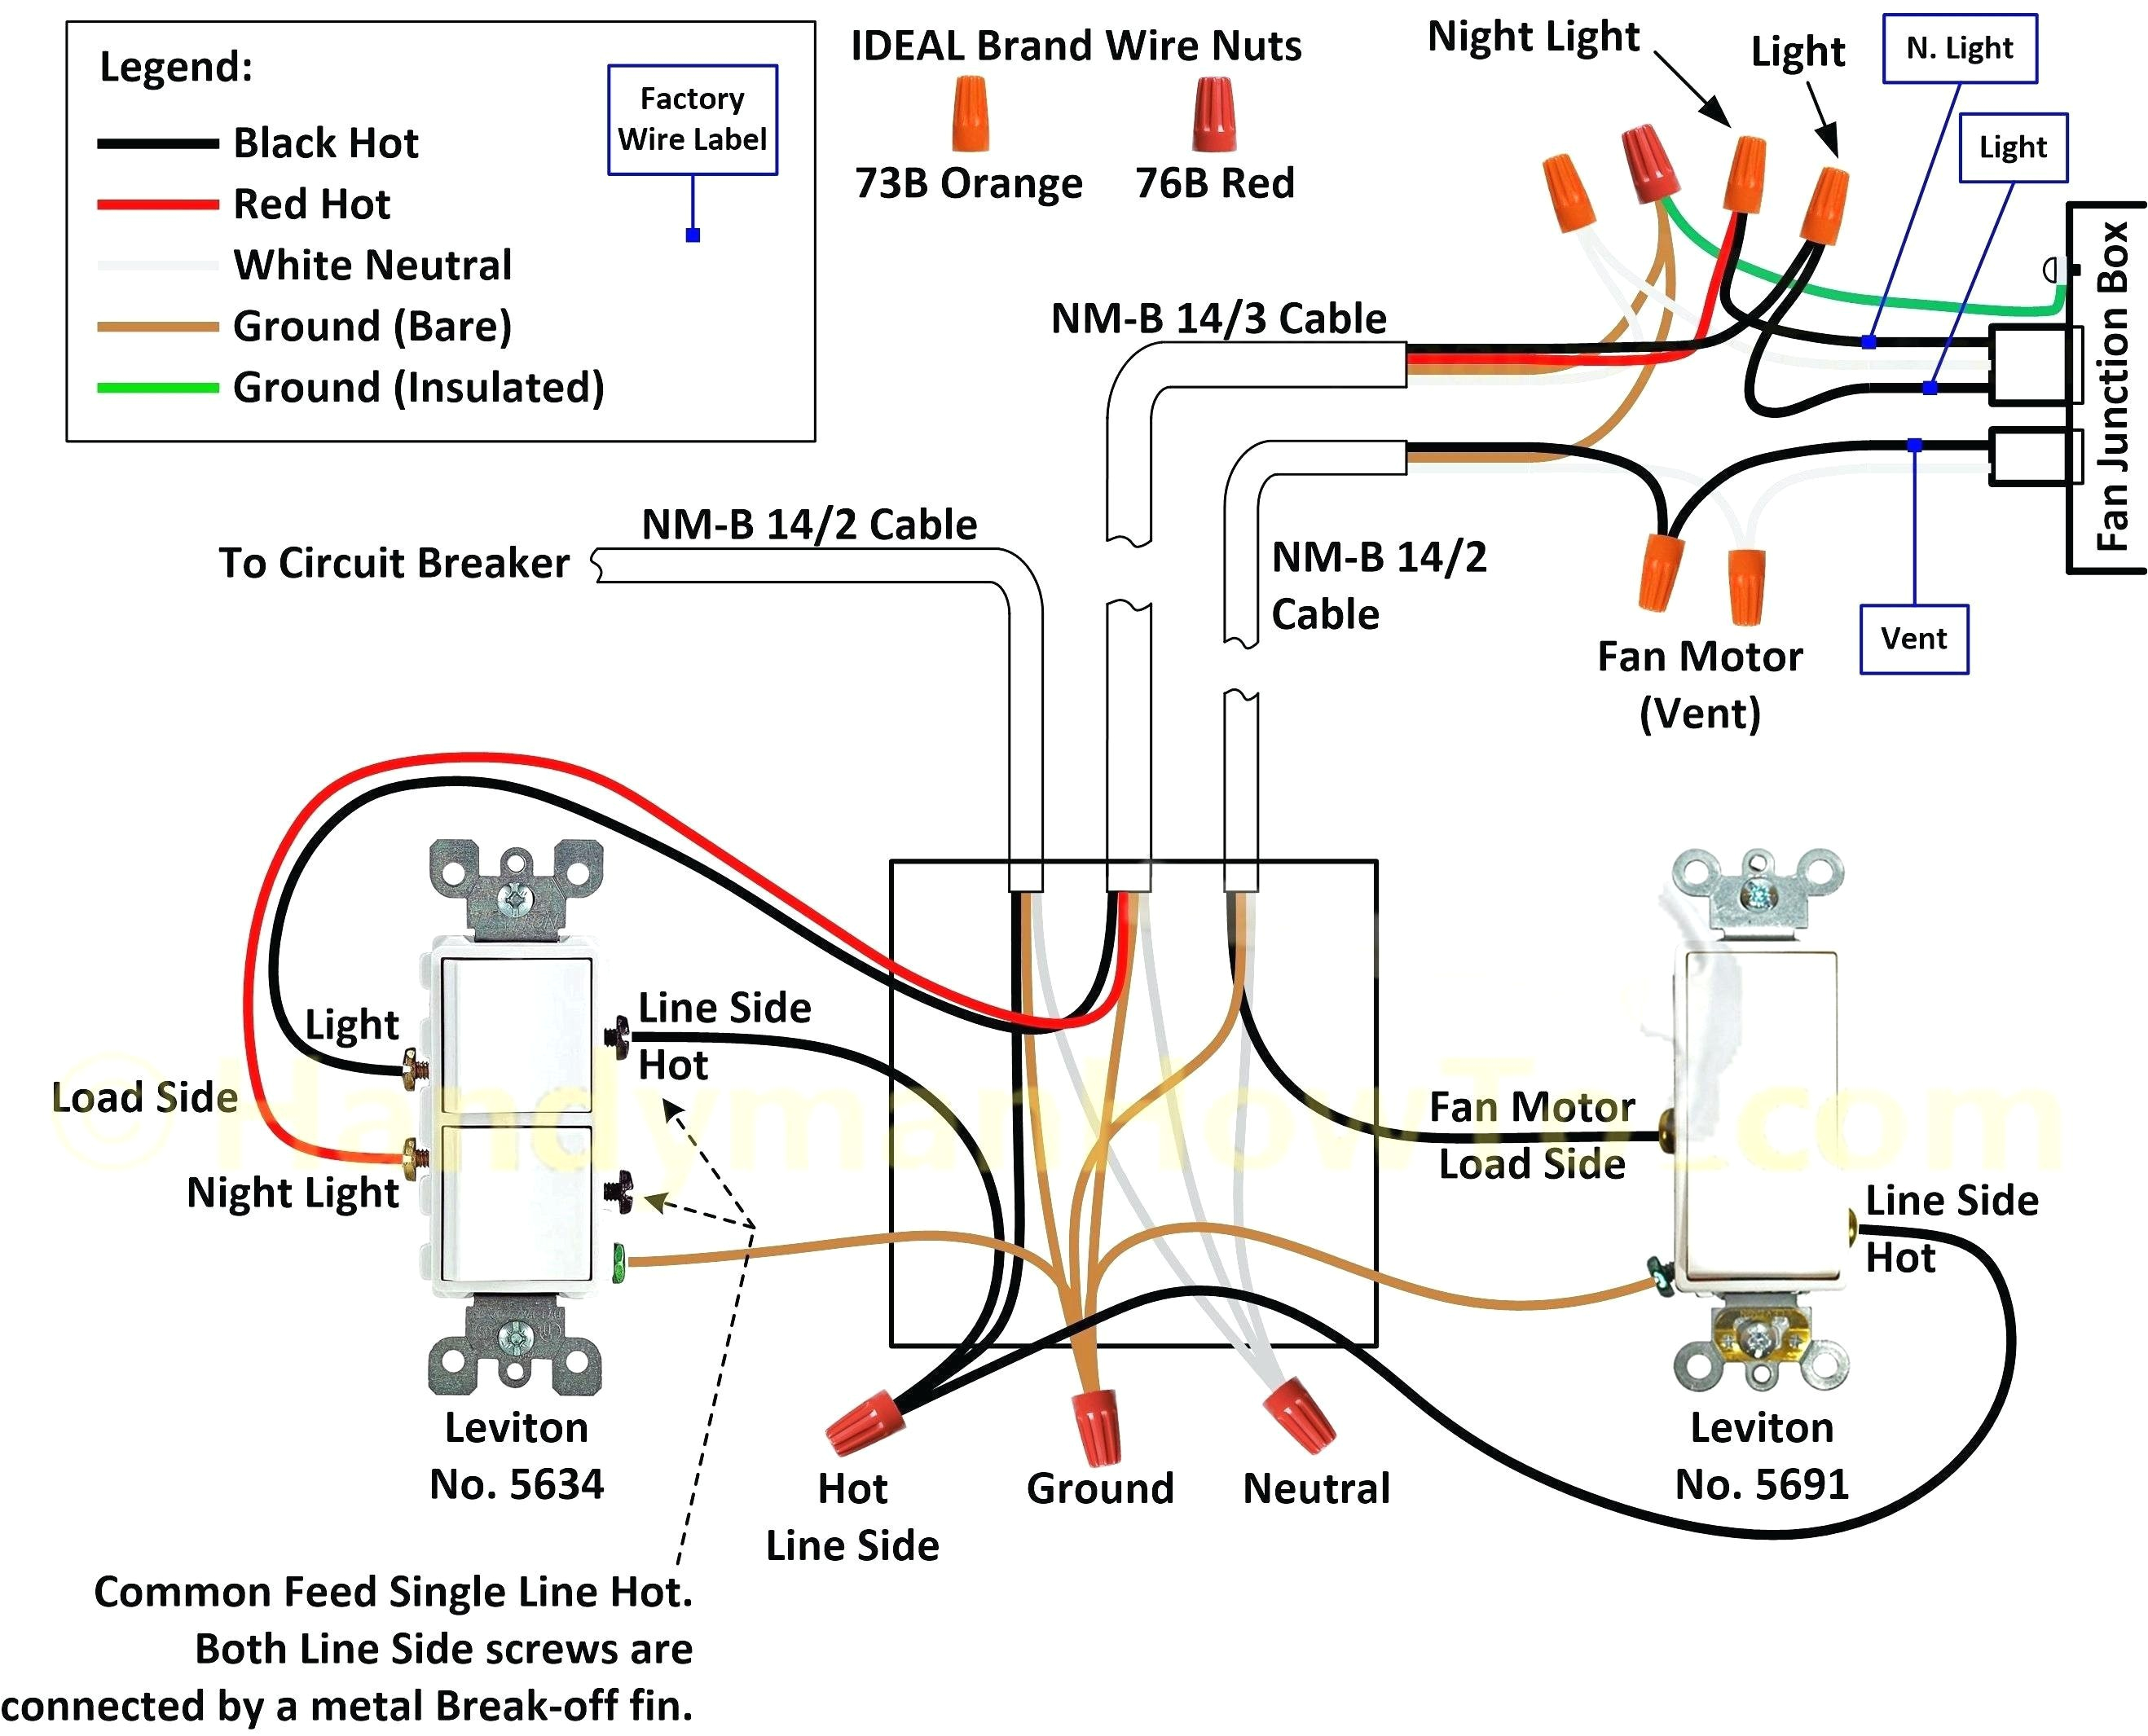 light wiring diagram pdf wiring diagram page led strip light wiring diagram pdf light wiring diagram pdf